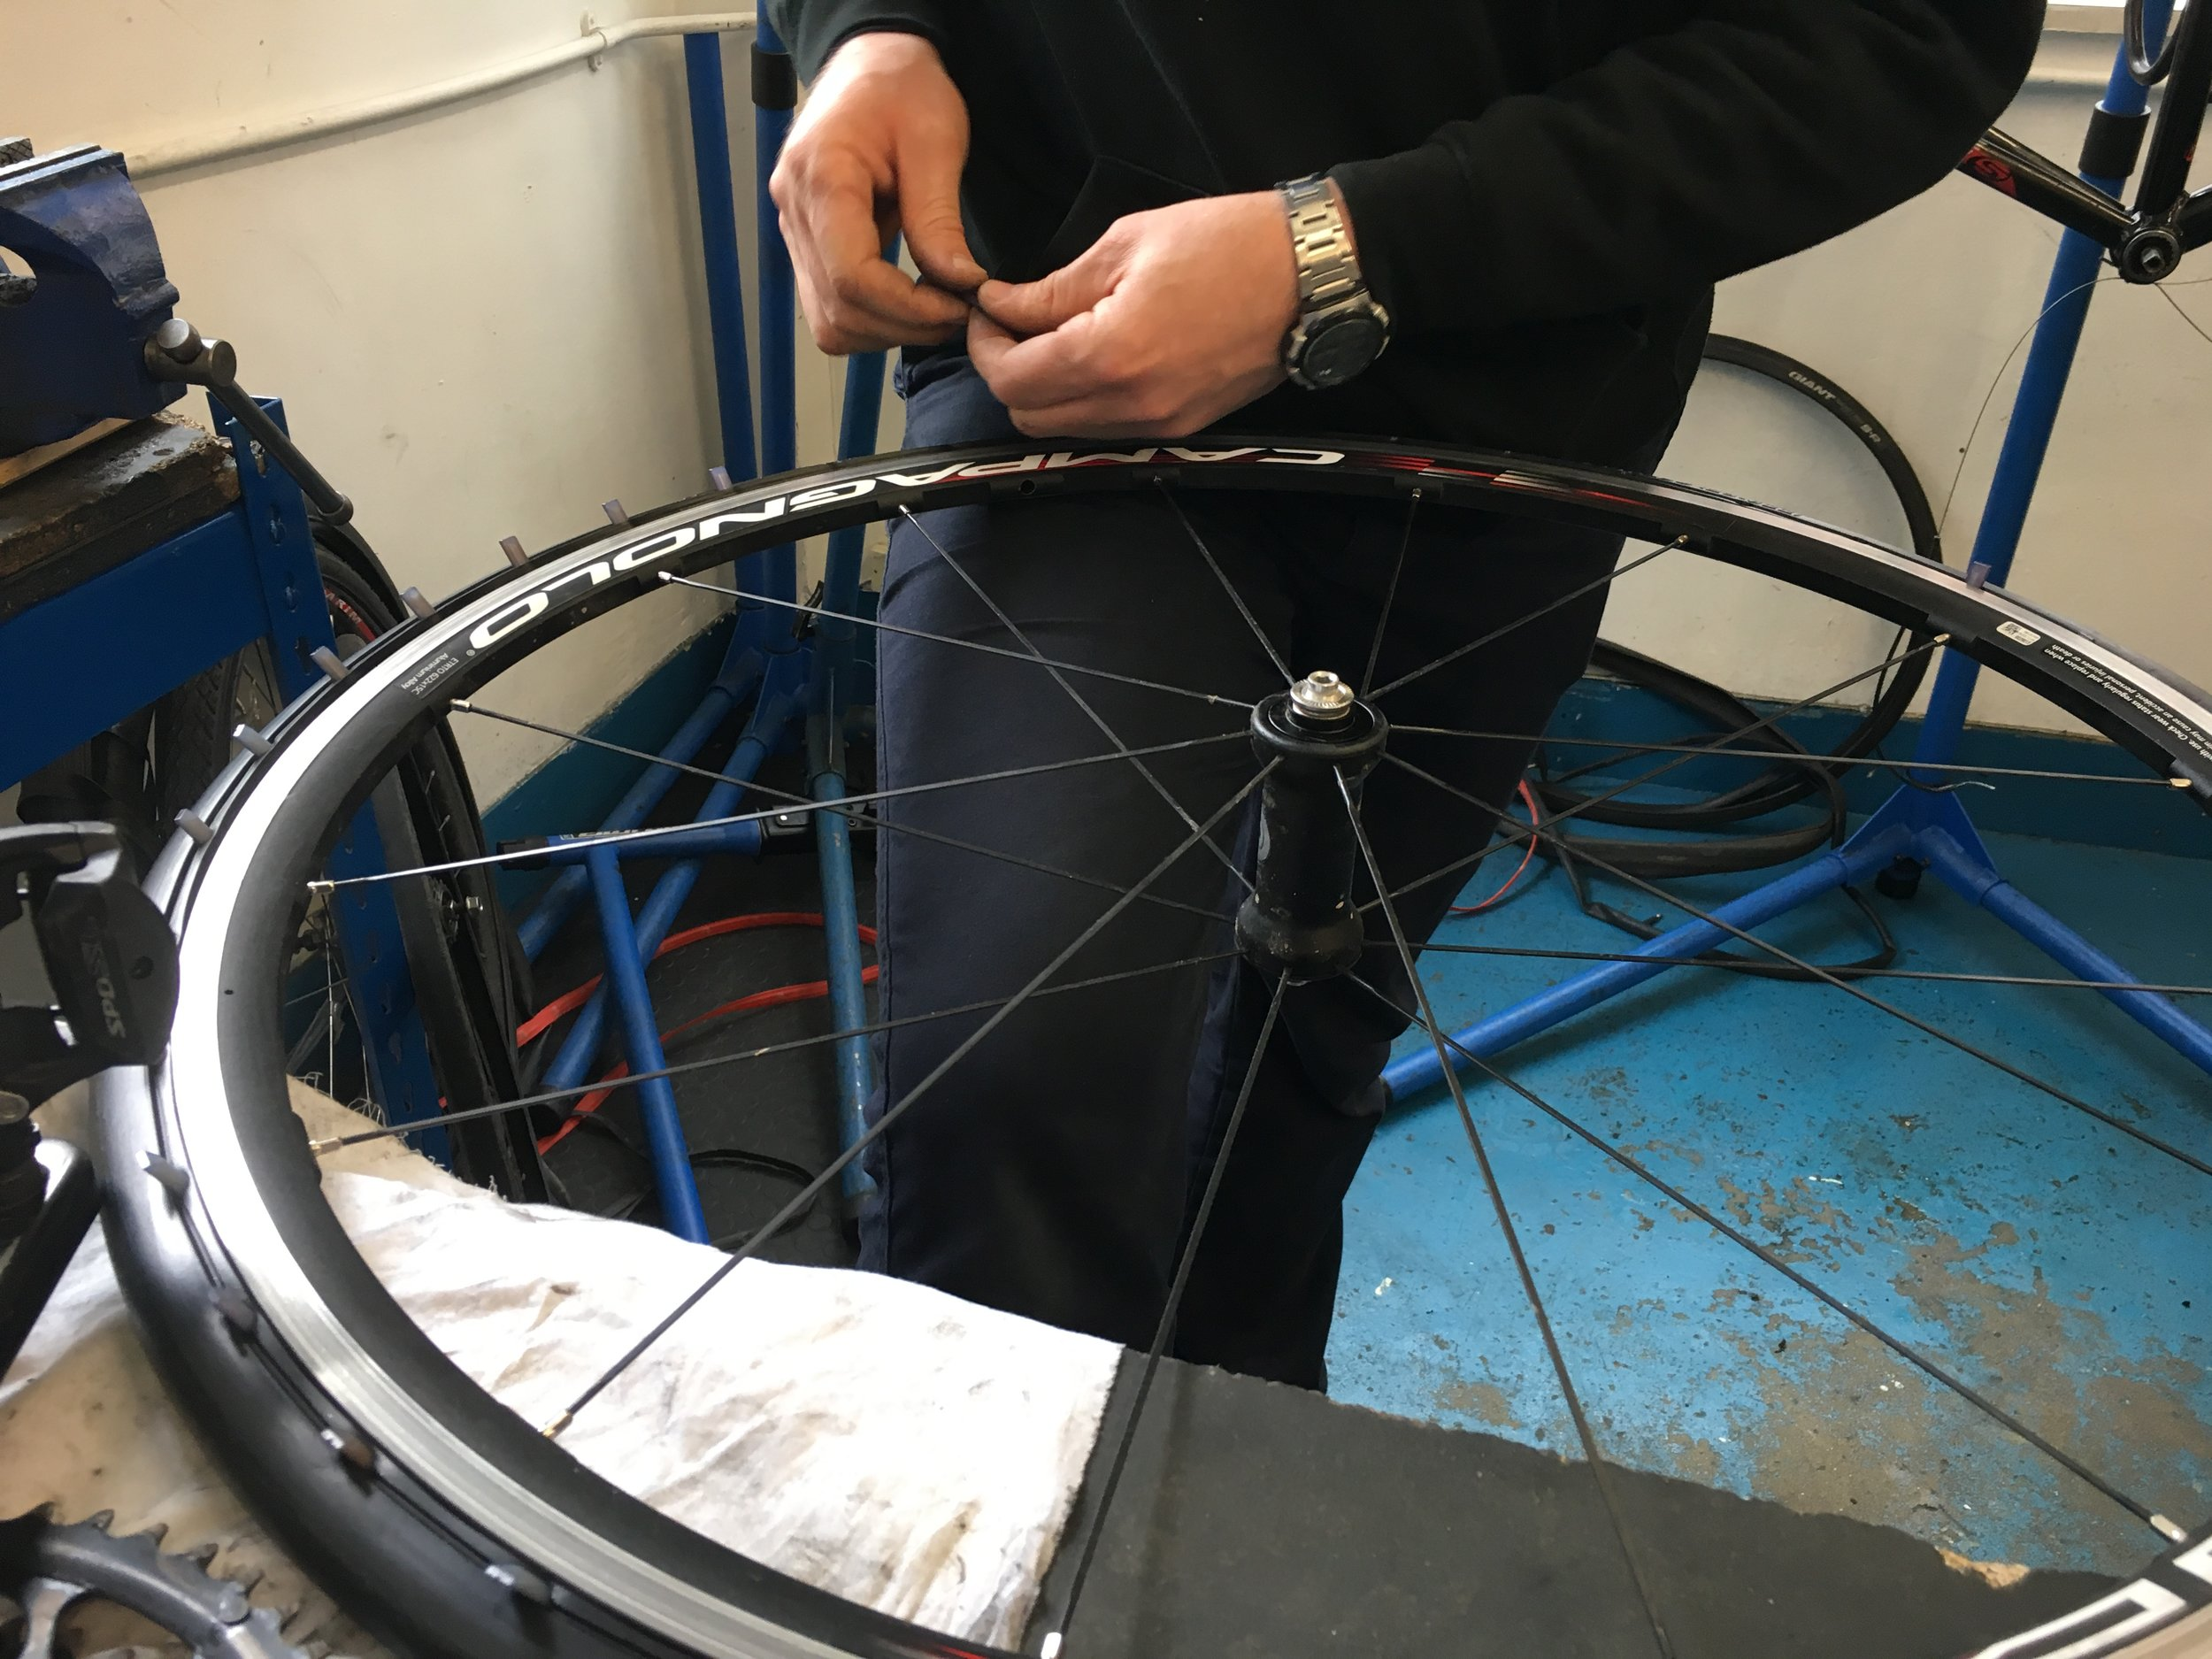 F itting the tyres to my lovely wheels was a bit alarming